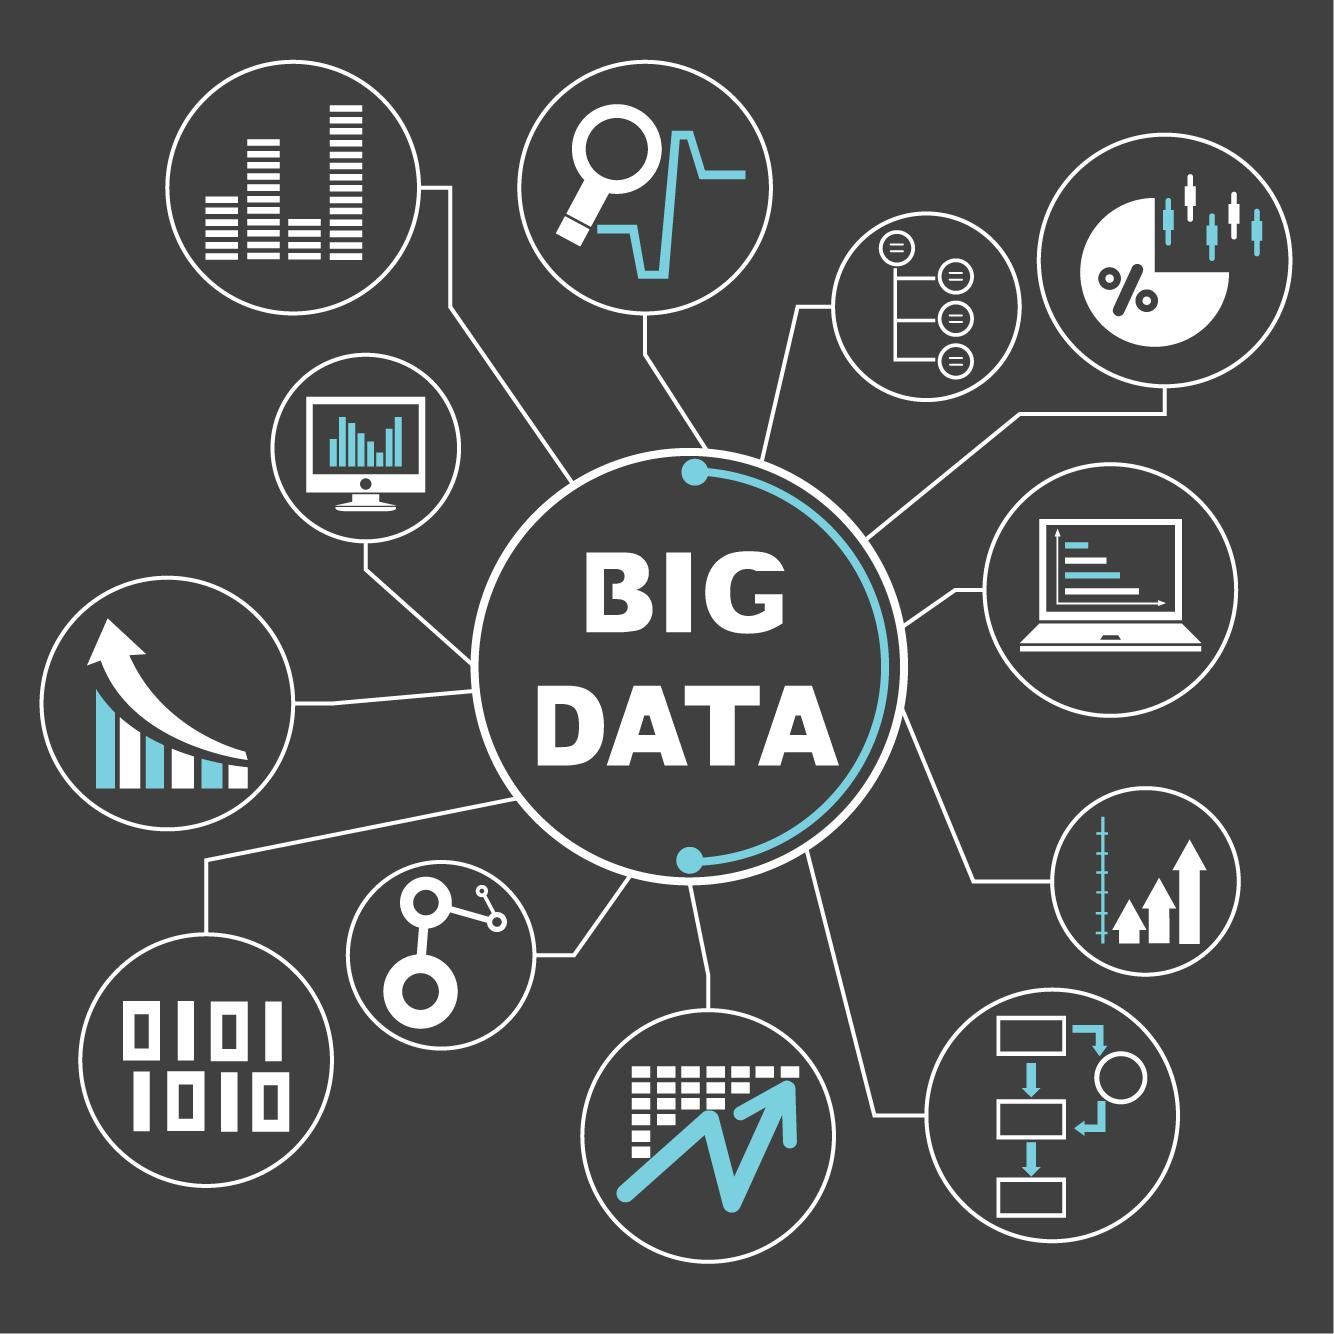 Big-data profesionales